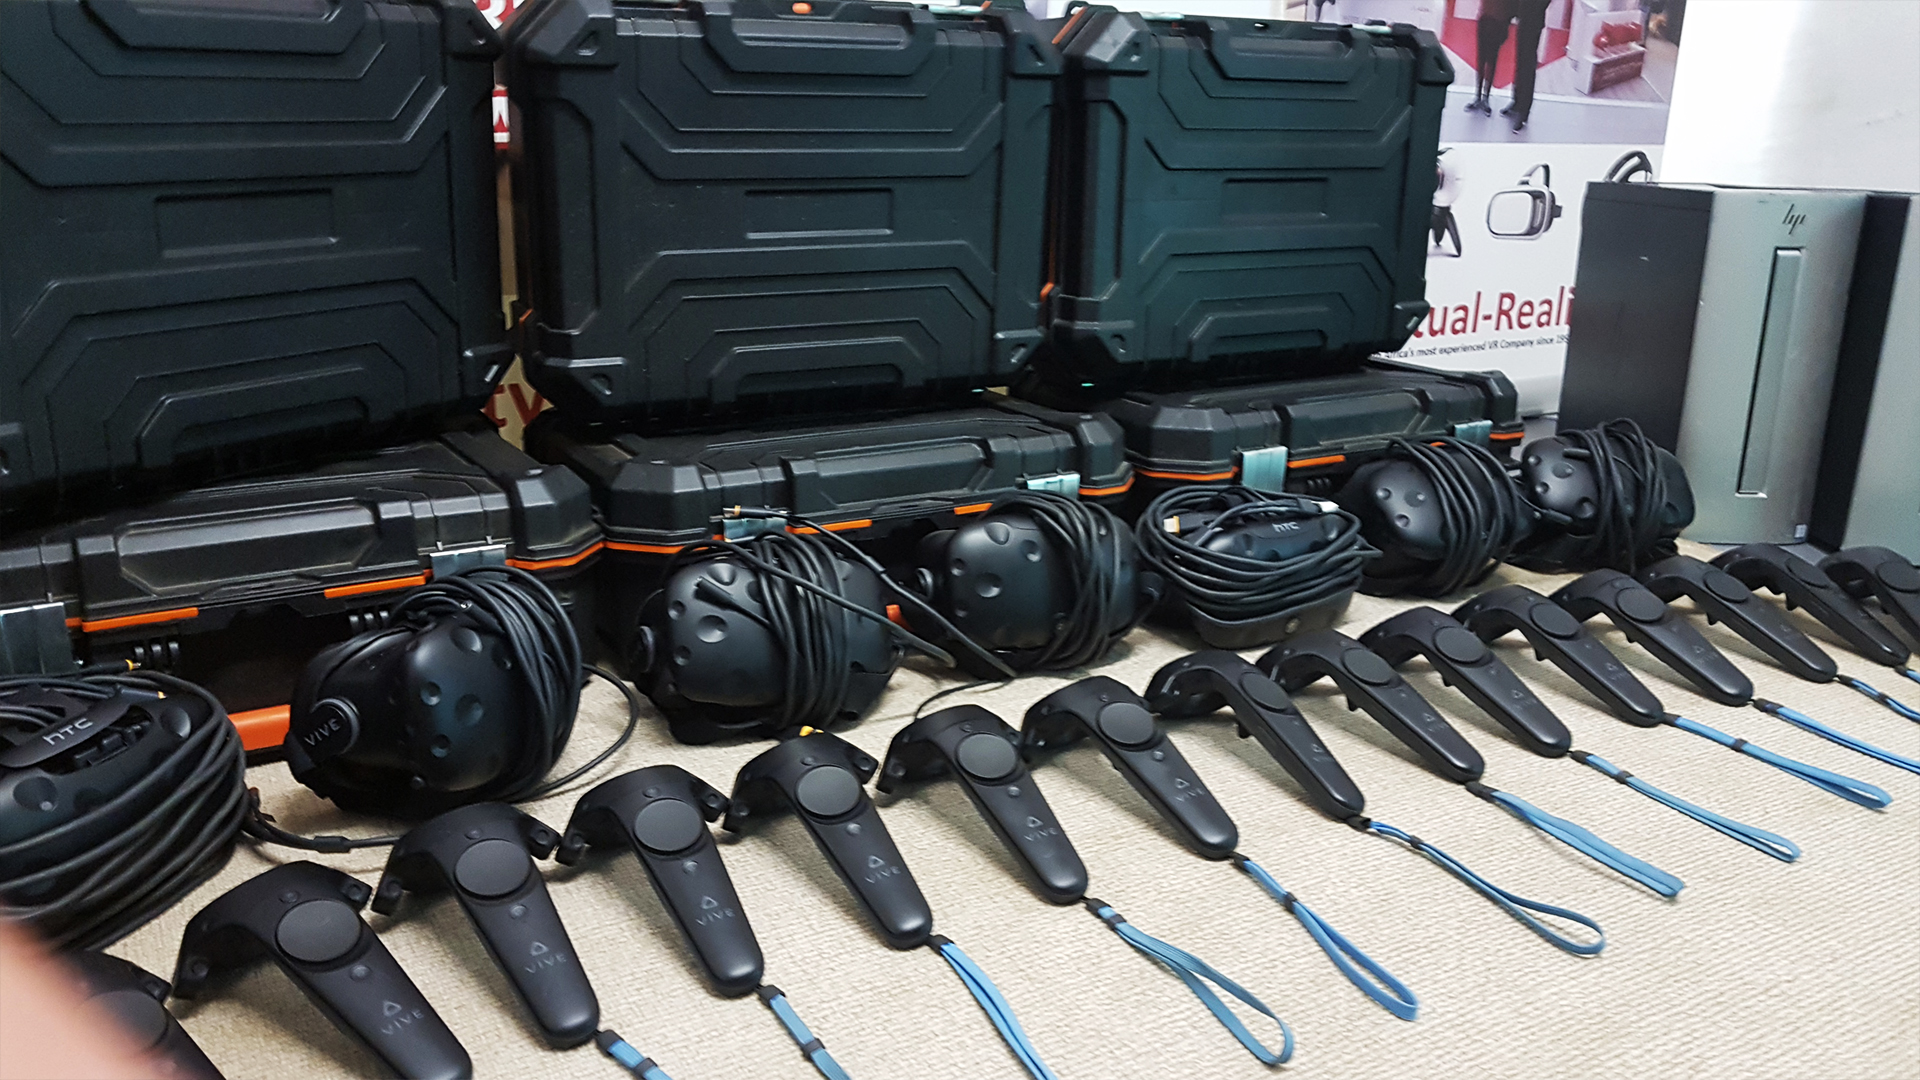 HTC VIVE Equipment for events